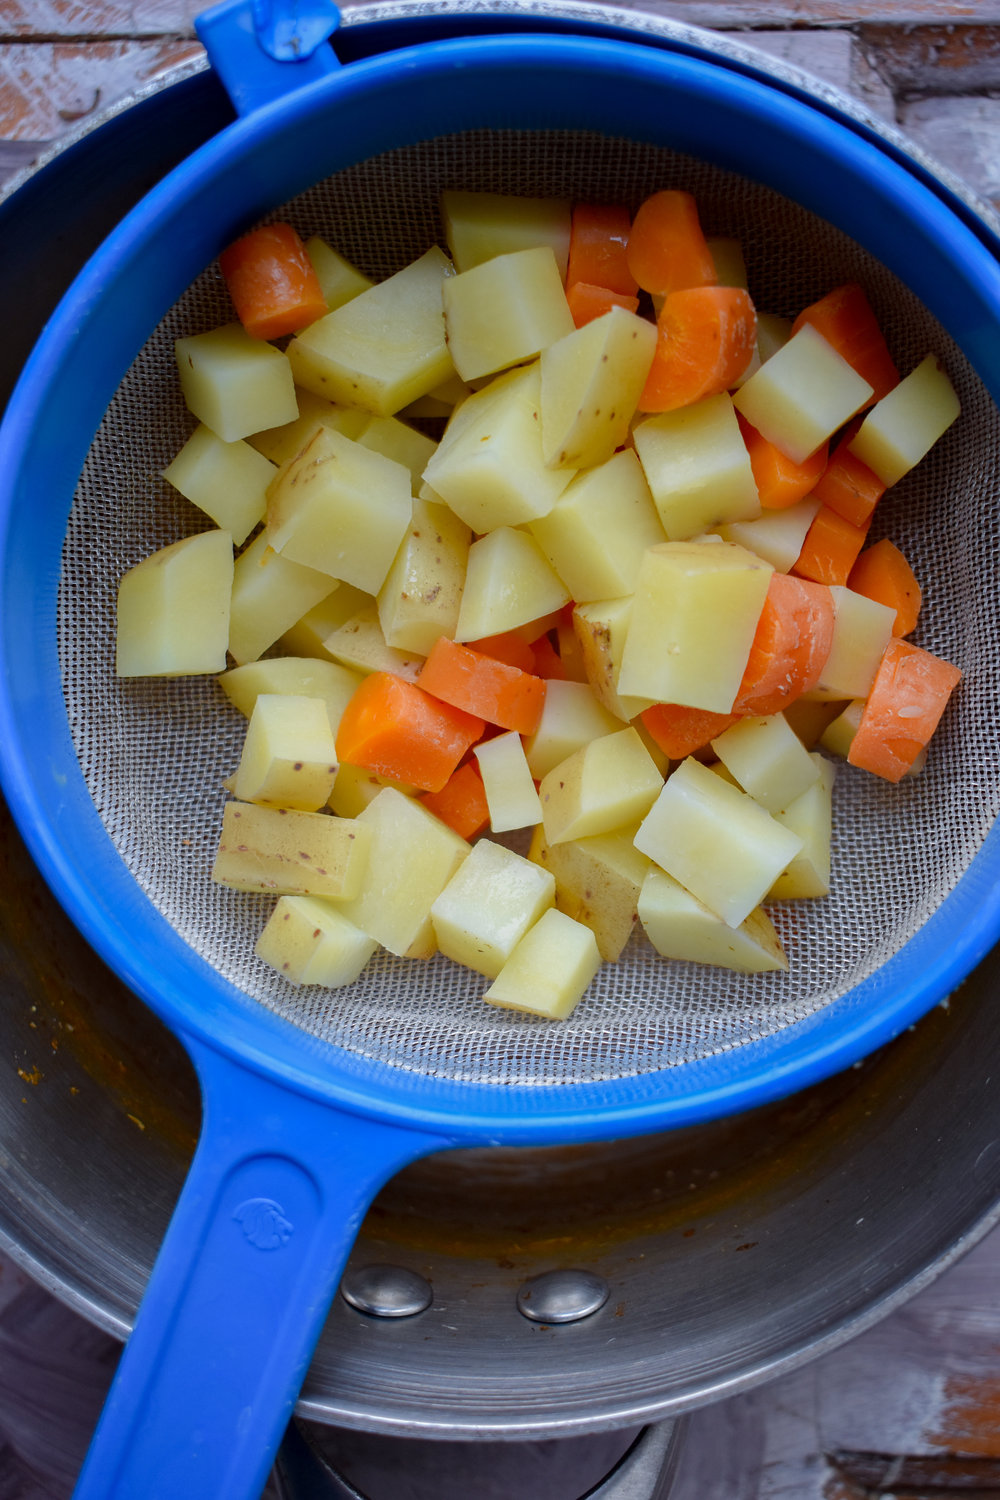 3. Place the potatoes and carrots into a small pot with water that covers them. Turn on high heat, bring to boil, and boil for 10 minutes. Drain when done and set aside.